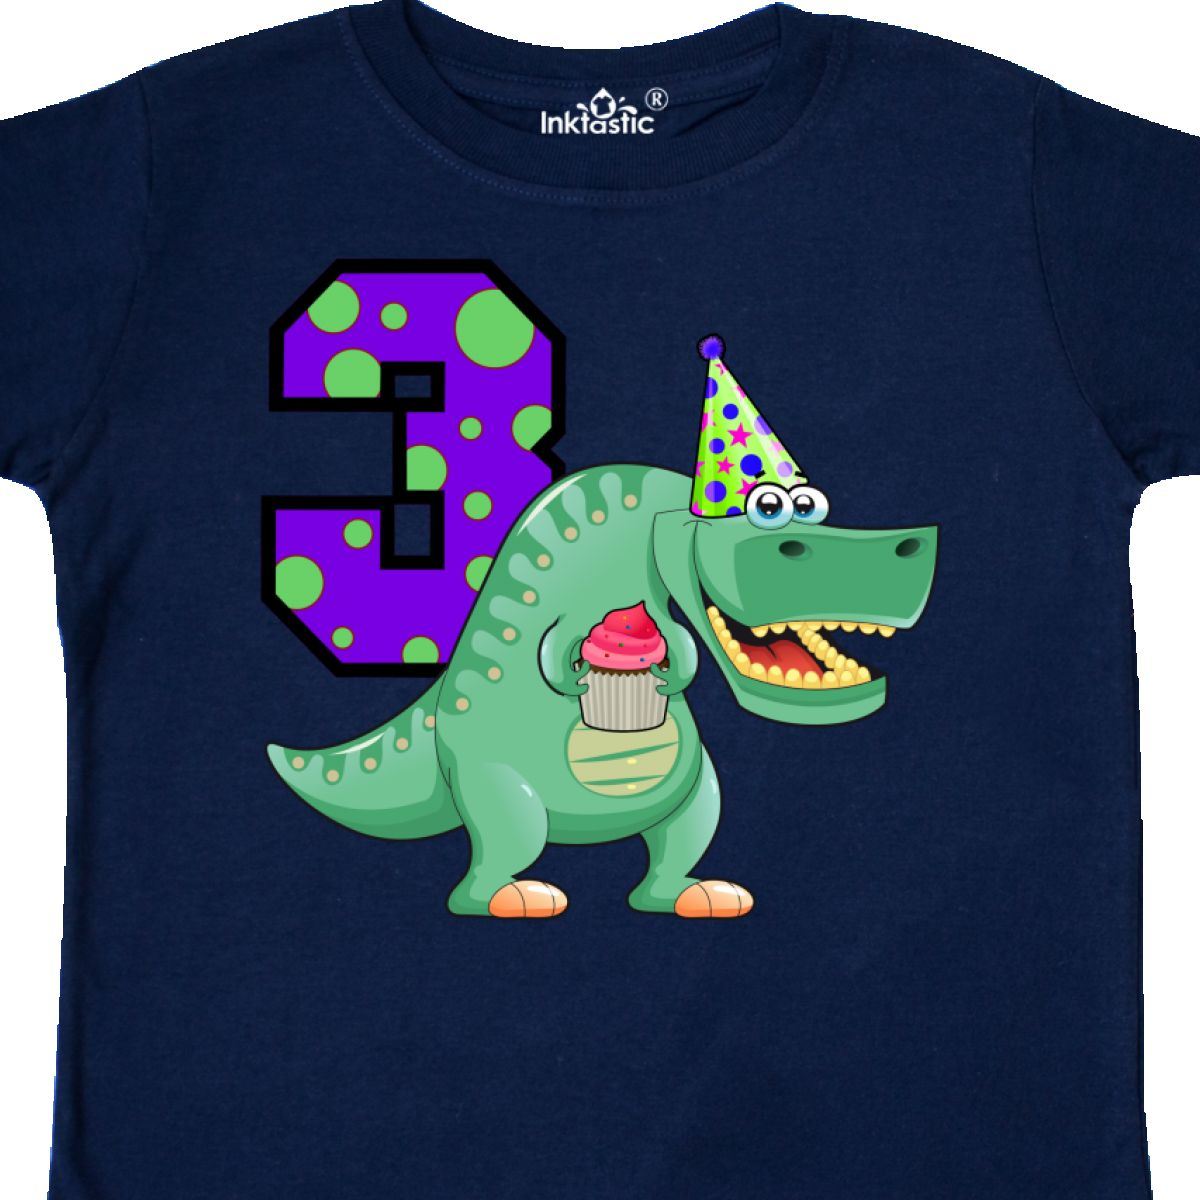 Inktastic 3rd Birthday T Rex Toddler Shirt